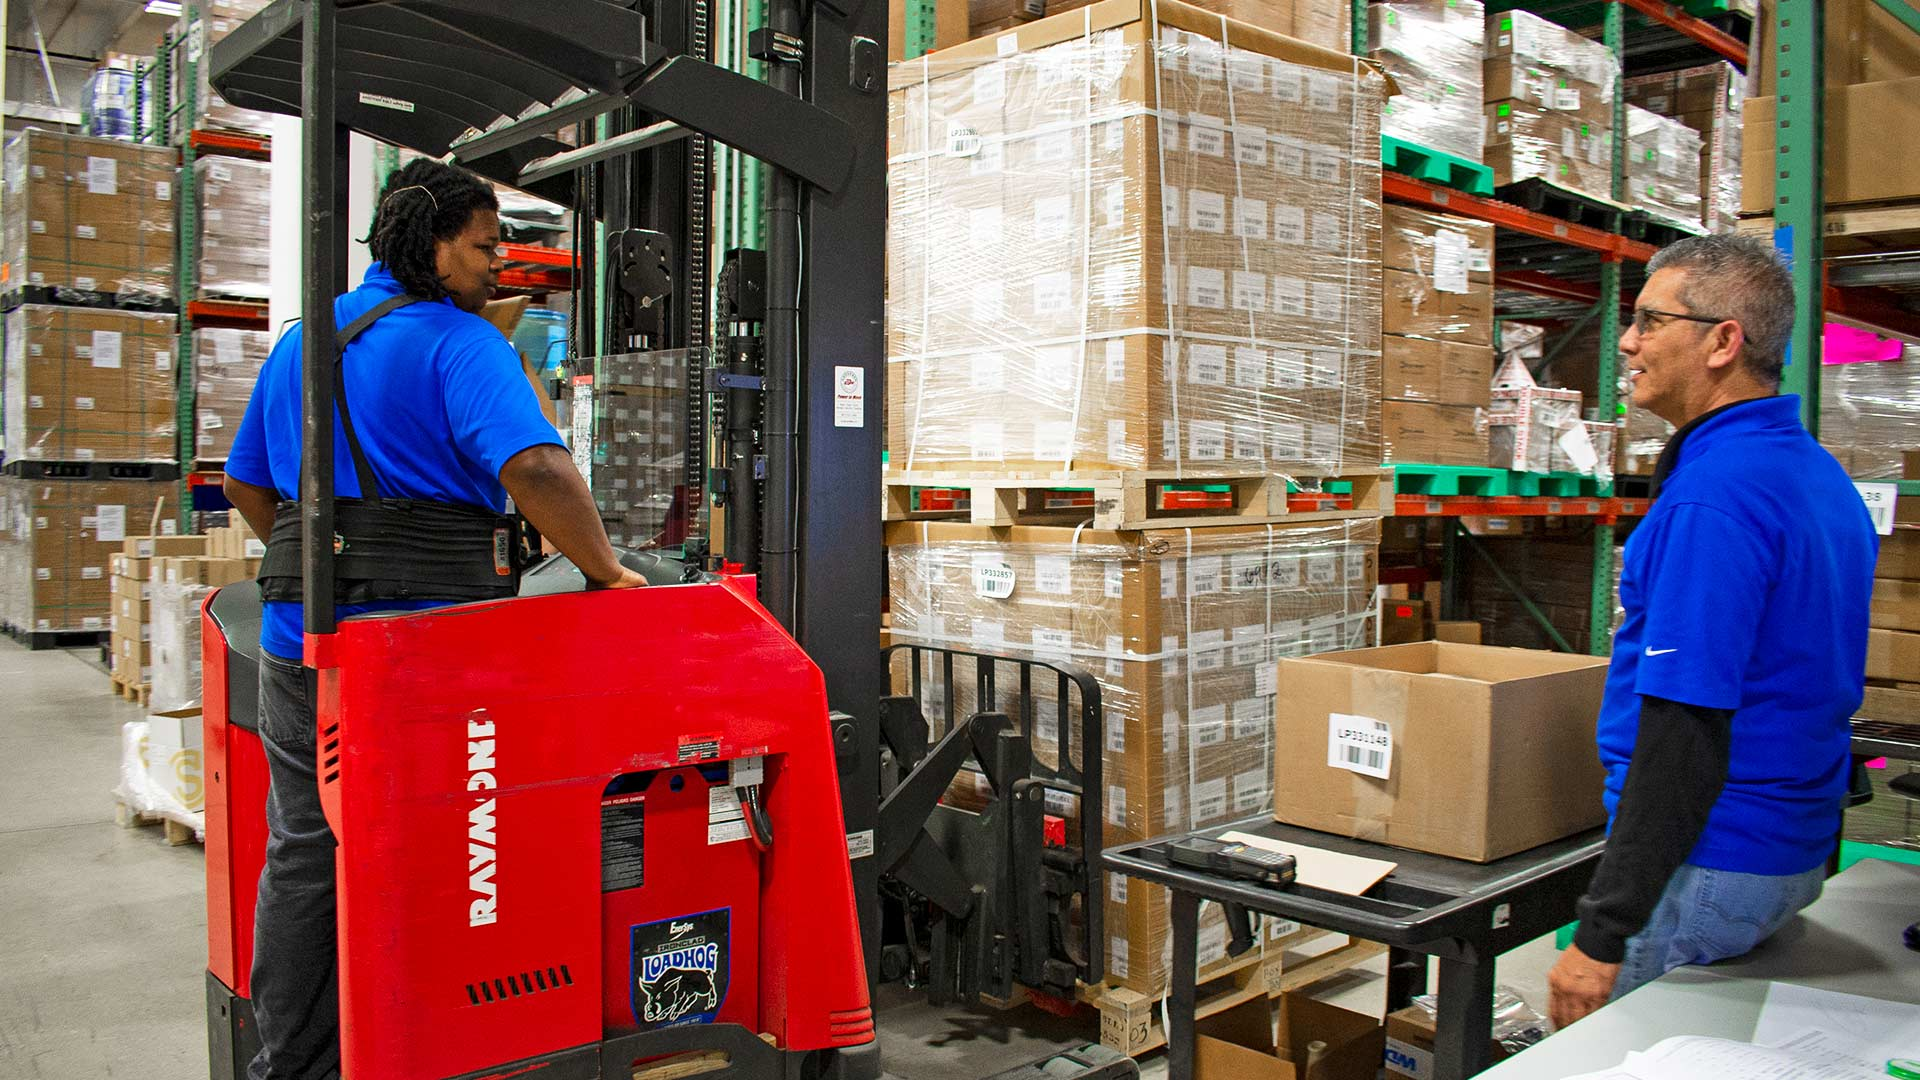 Receipt Storage Fulfillment is heavily influenced by technology and machinery.